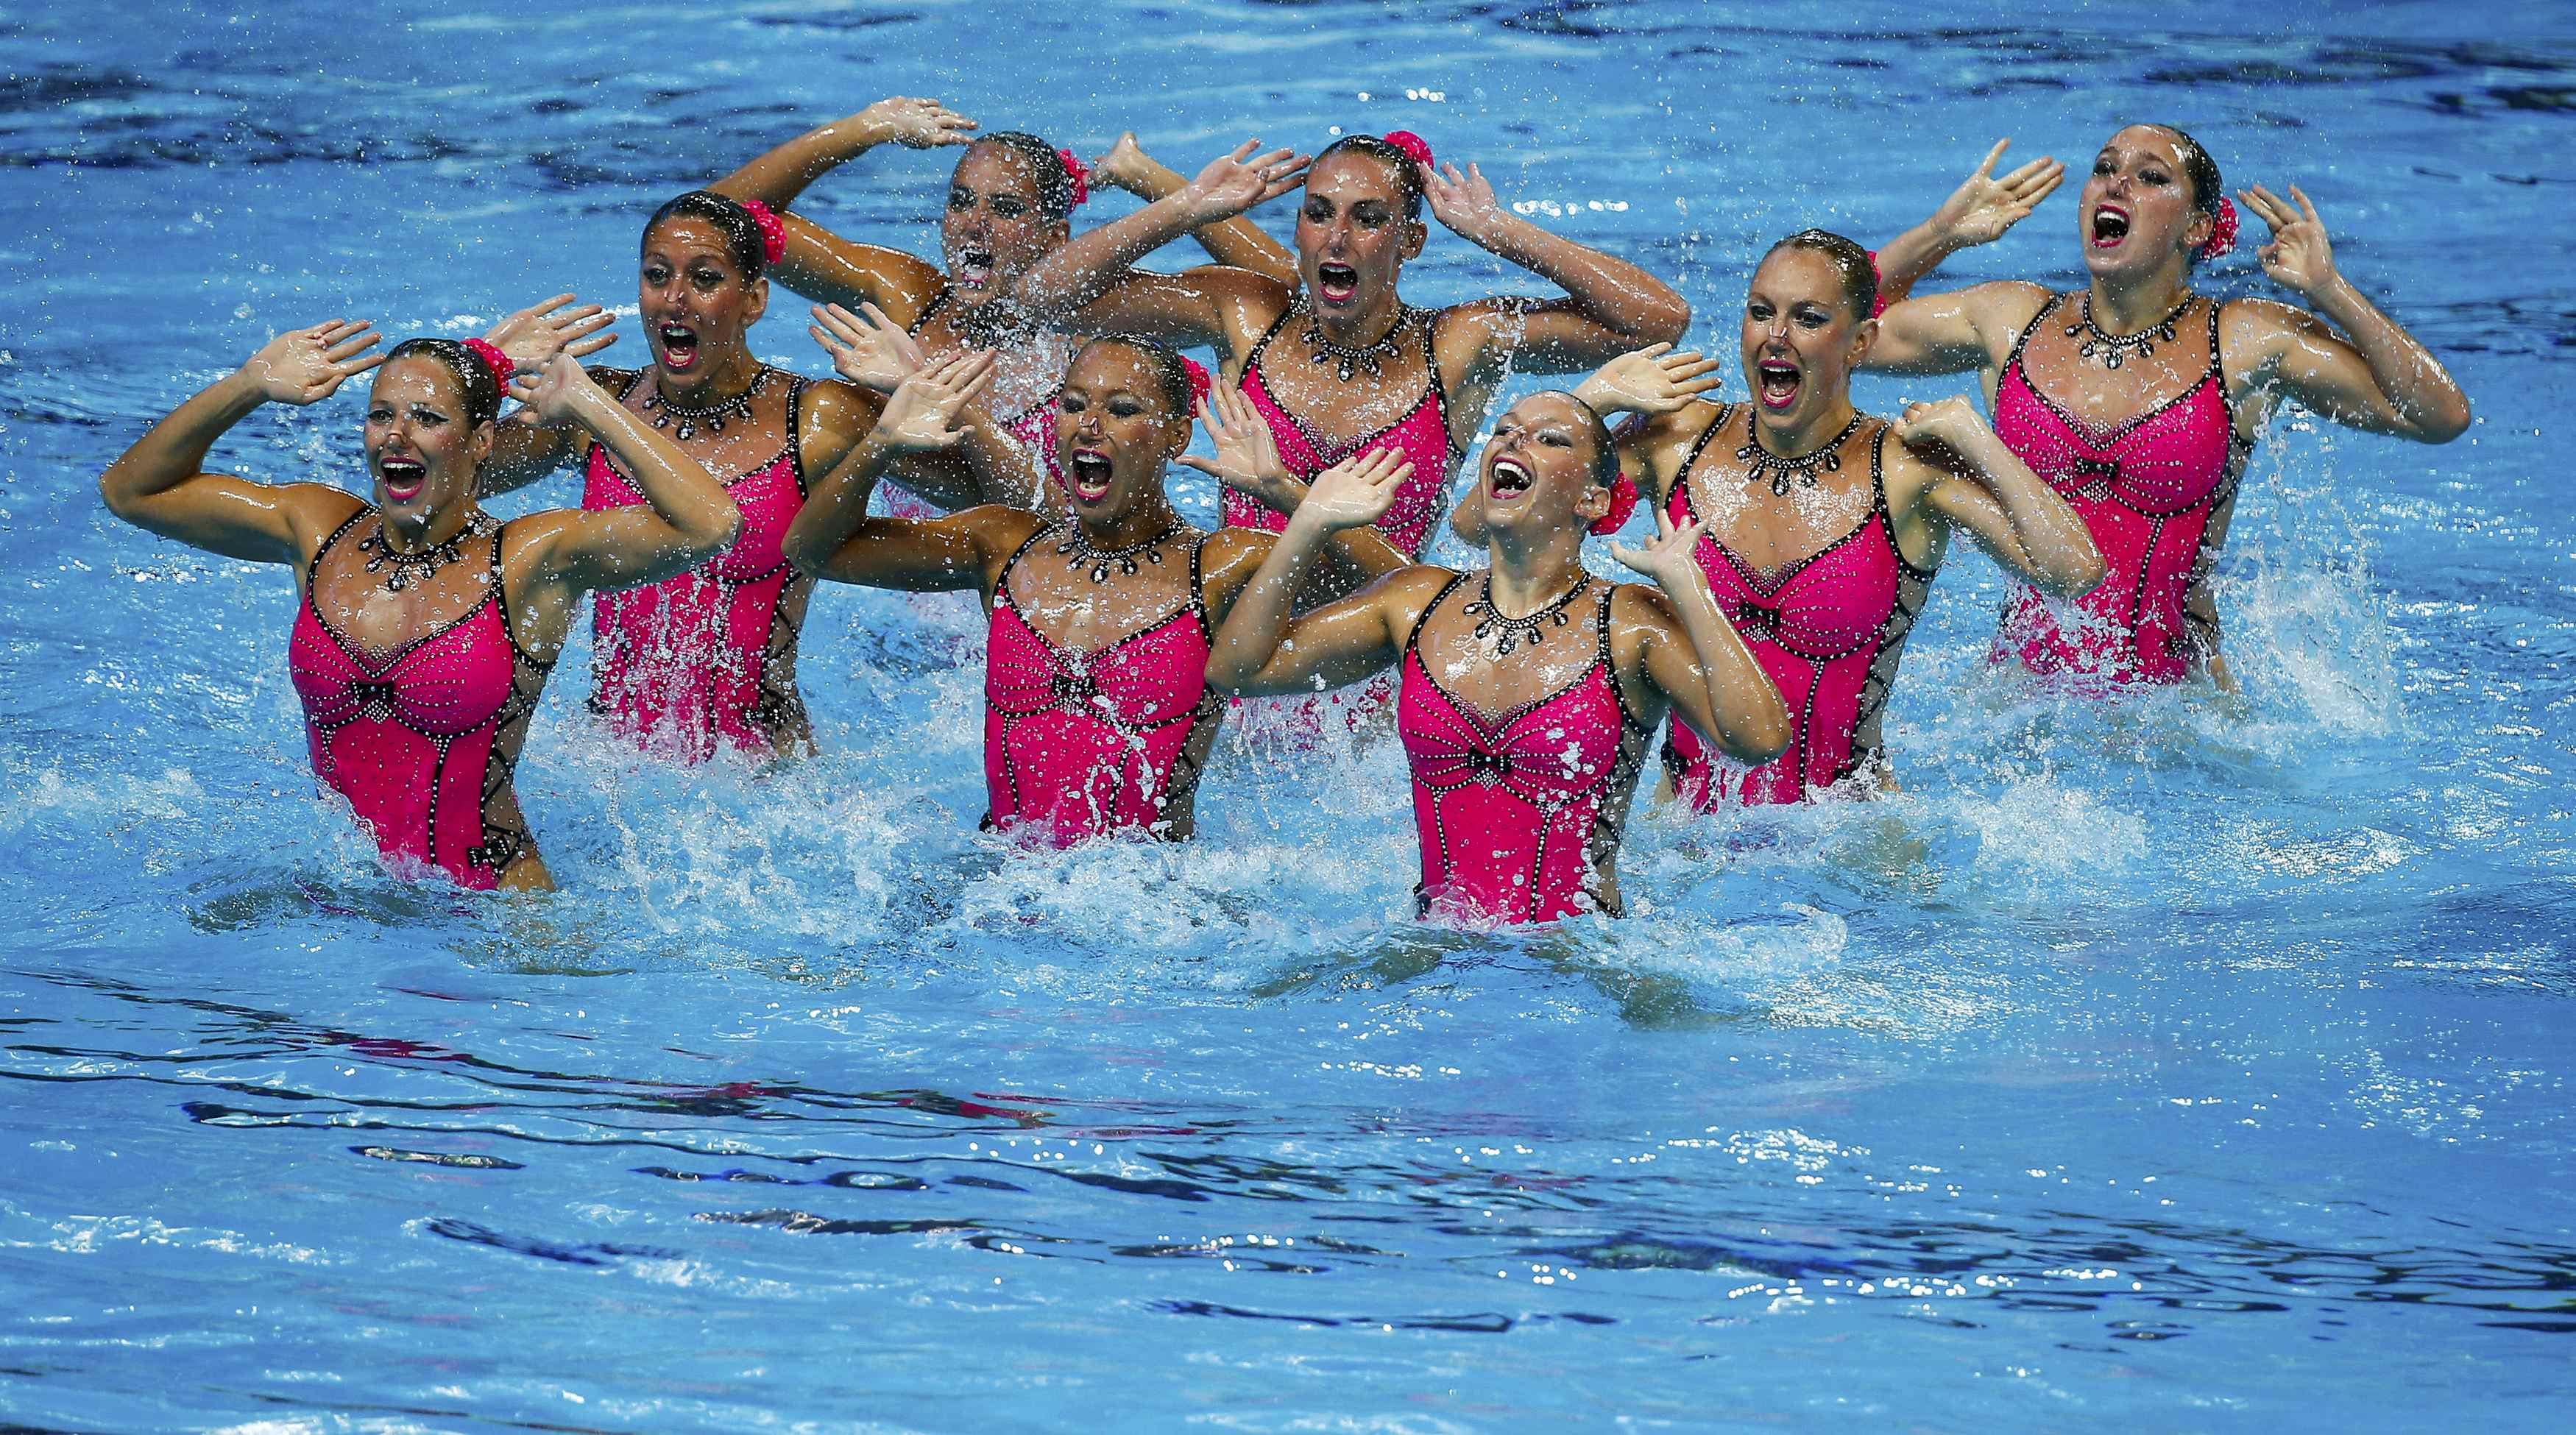 Members of Team France perform in the synchronised swimming team technical final at the Aquatics World Championships in Kazan, Russia July 27, 2015.